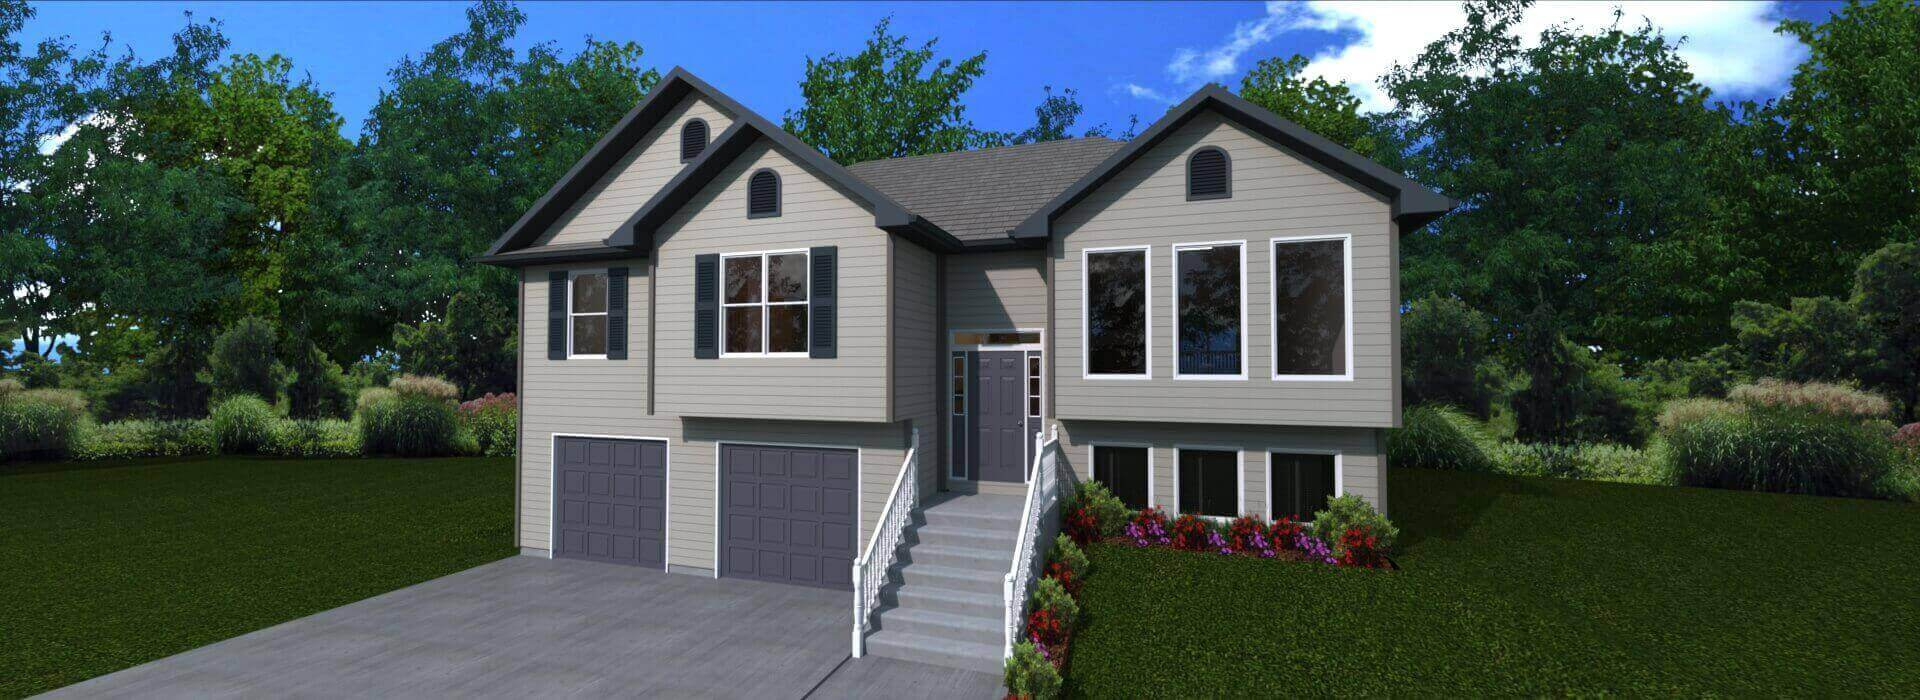 1790 sq.ft. timber mart house 3 bed 3 bath exterior render